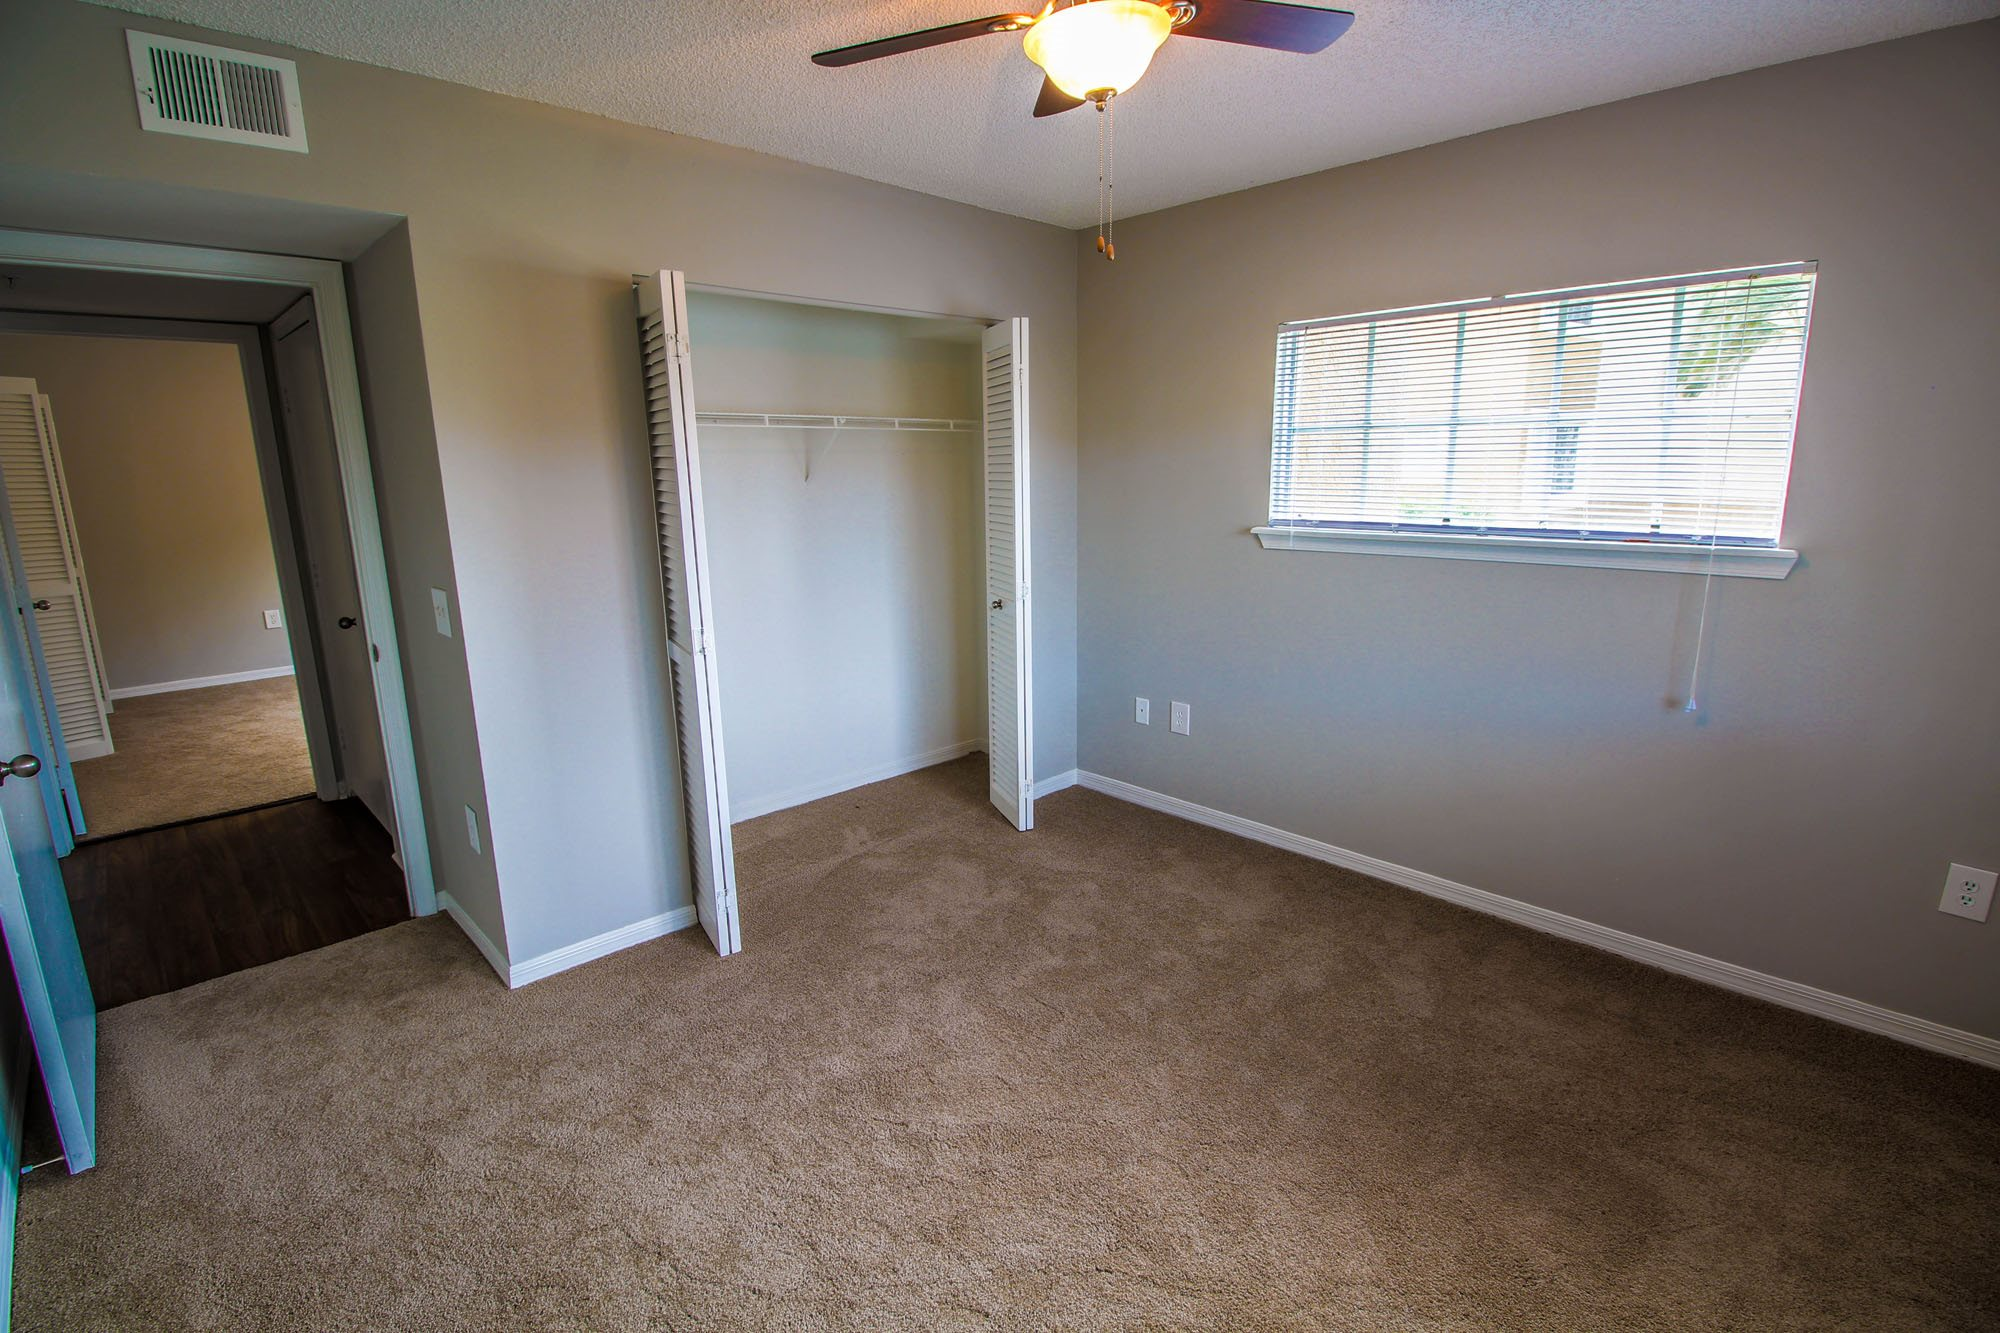 Spacious Bedrooms With Spacious Walk In Closets at Oasis Delray Apartments, Delray Beach, FL 33484